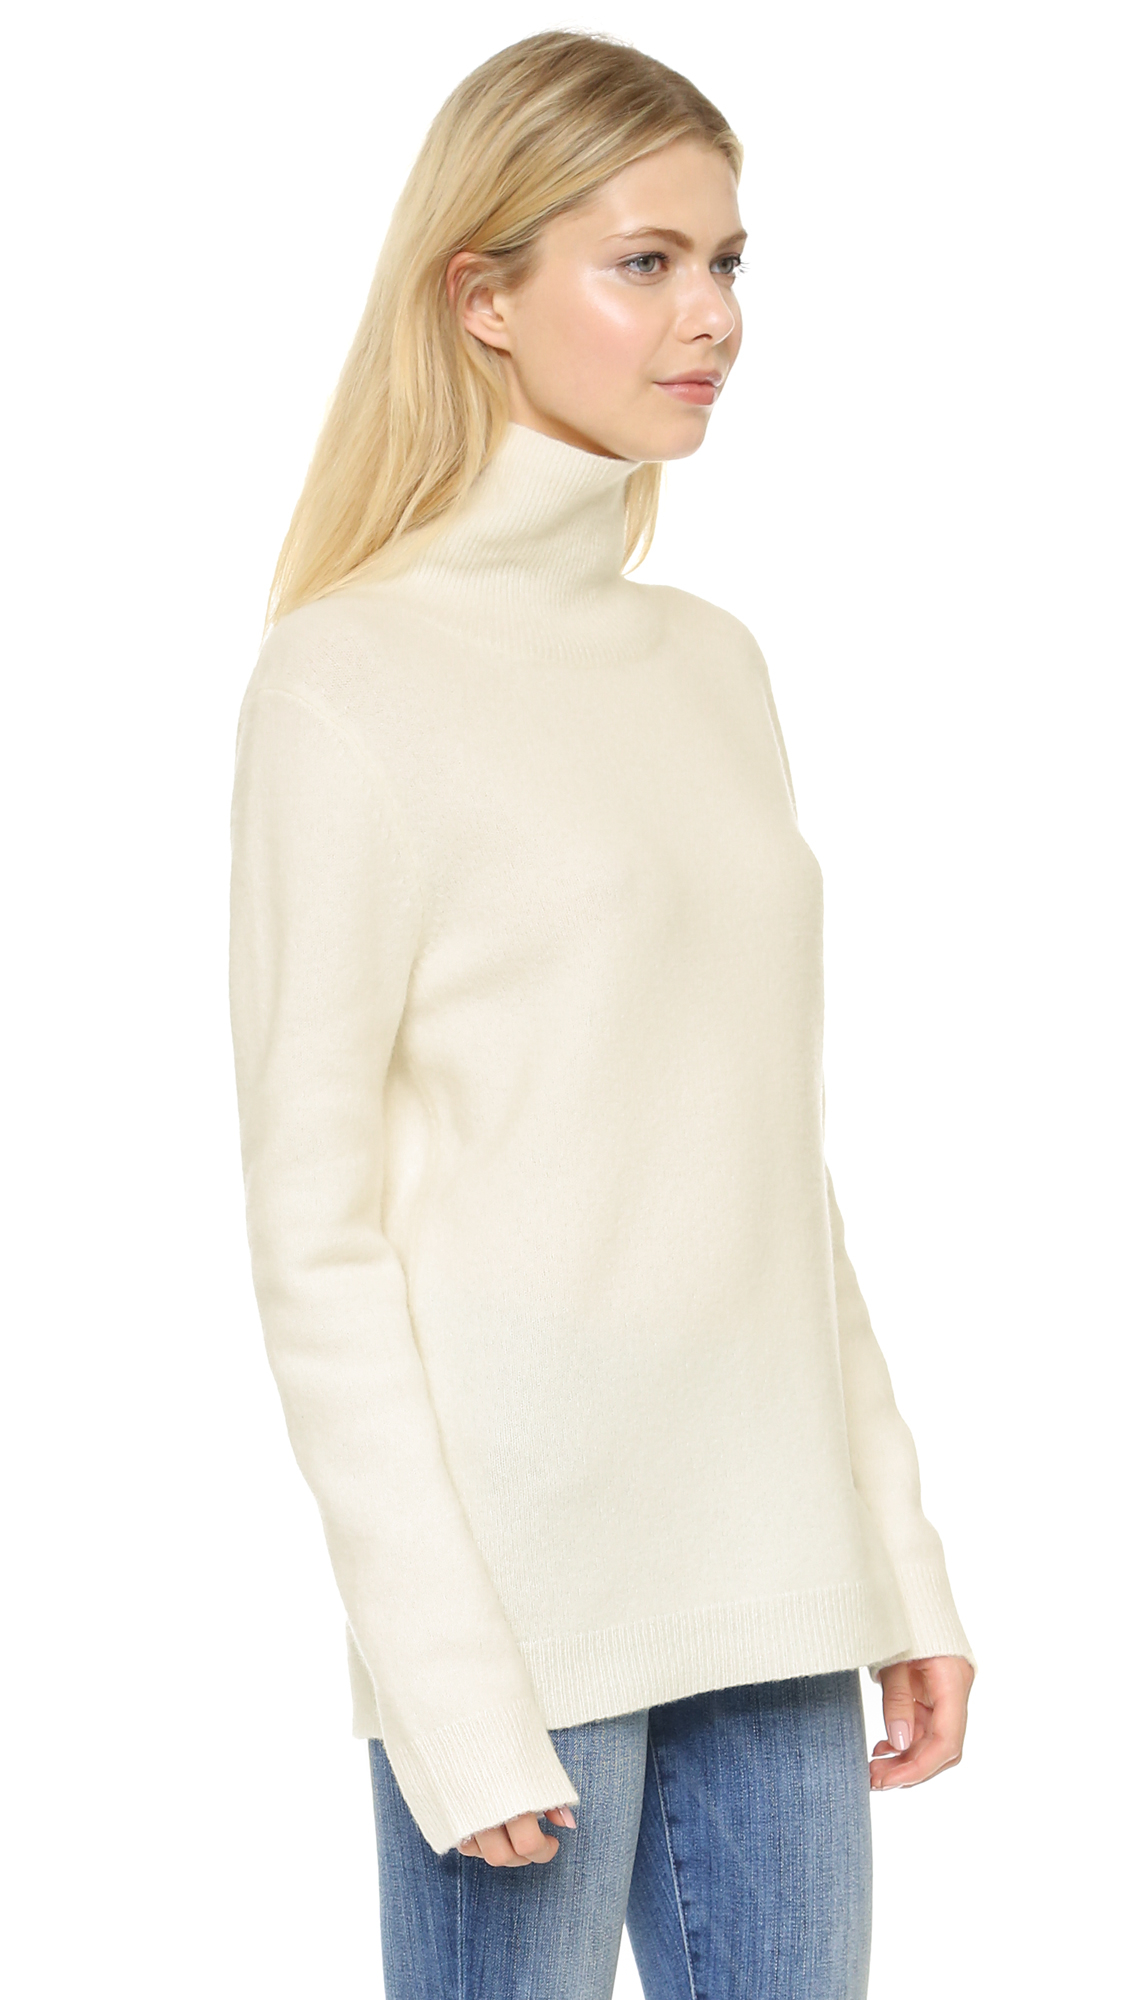 Dkny Long Sleeve Turtleneck Sweater - Ivory in White | Lyst